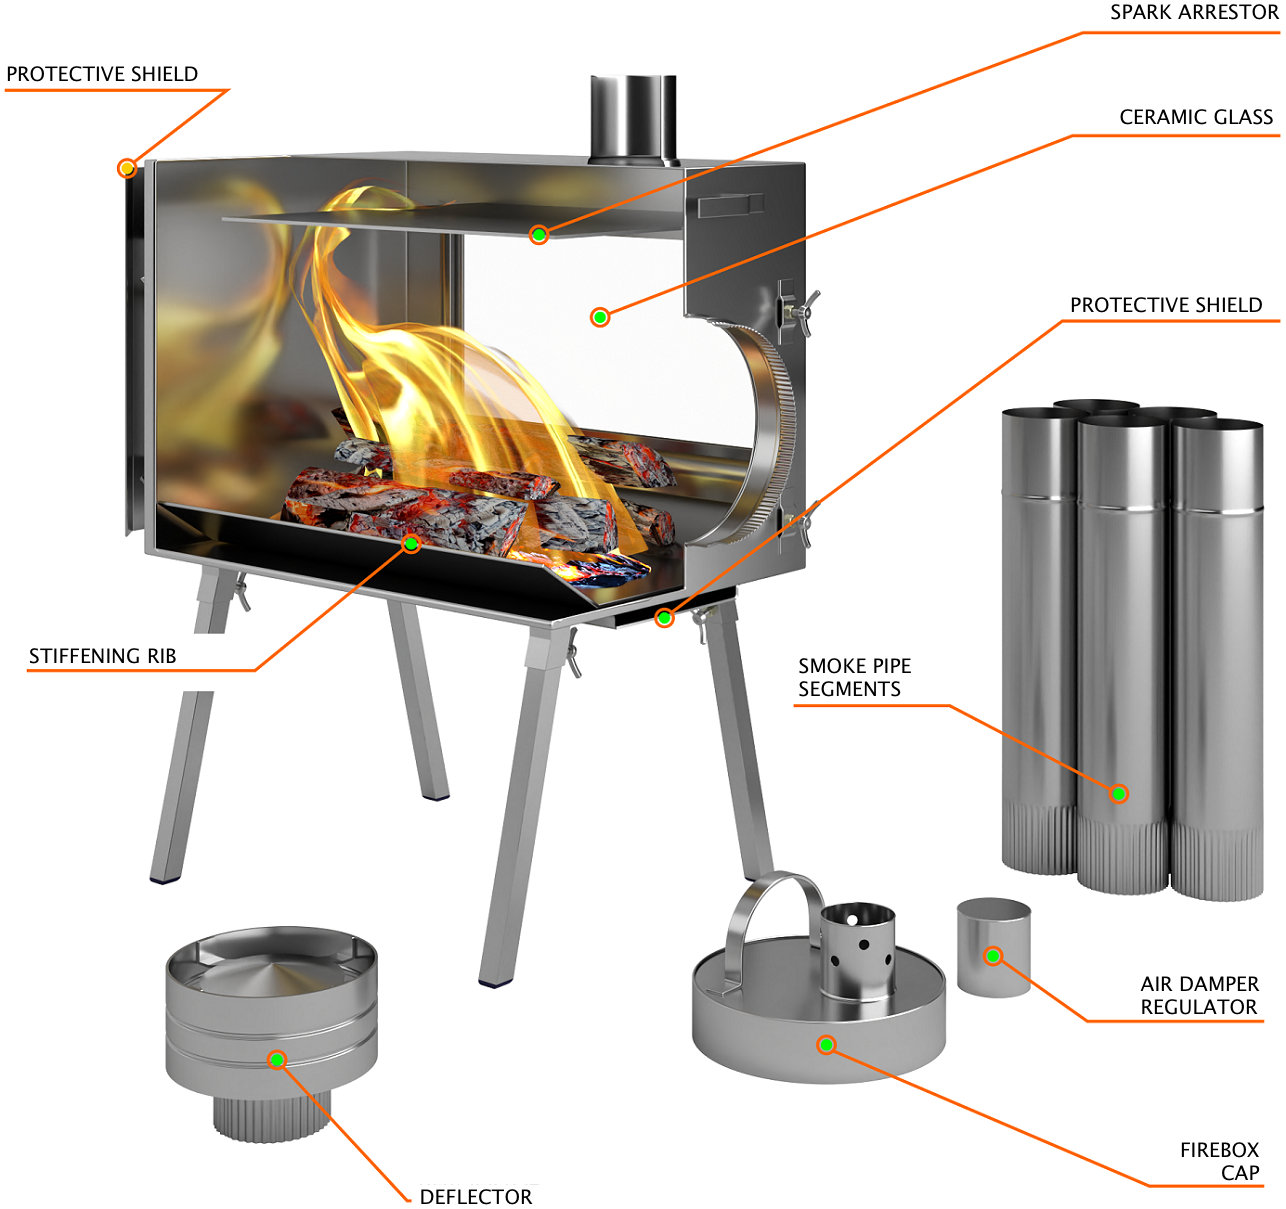 Medium Wood Stove With Fire-Resistant Glass